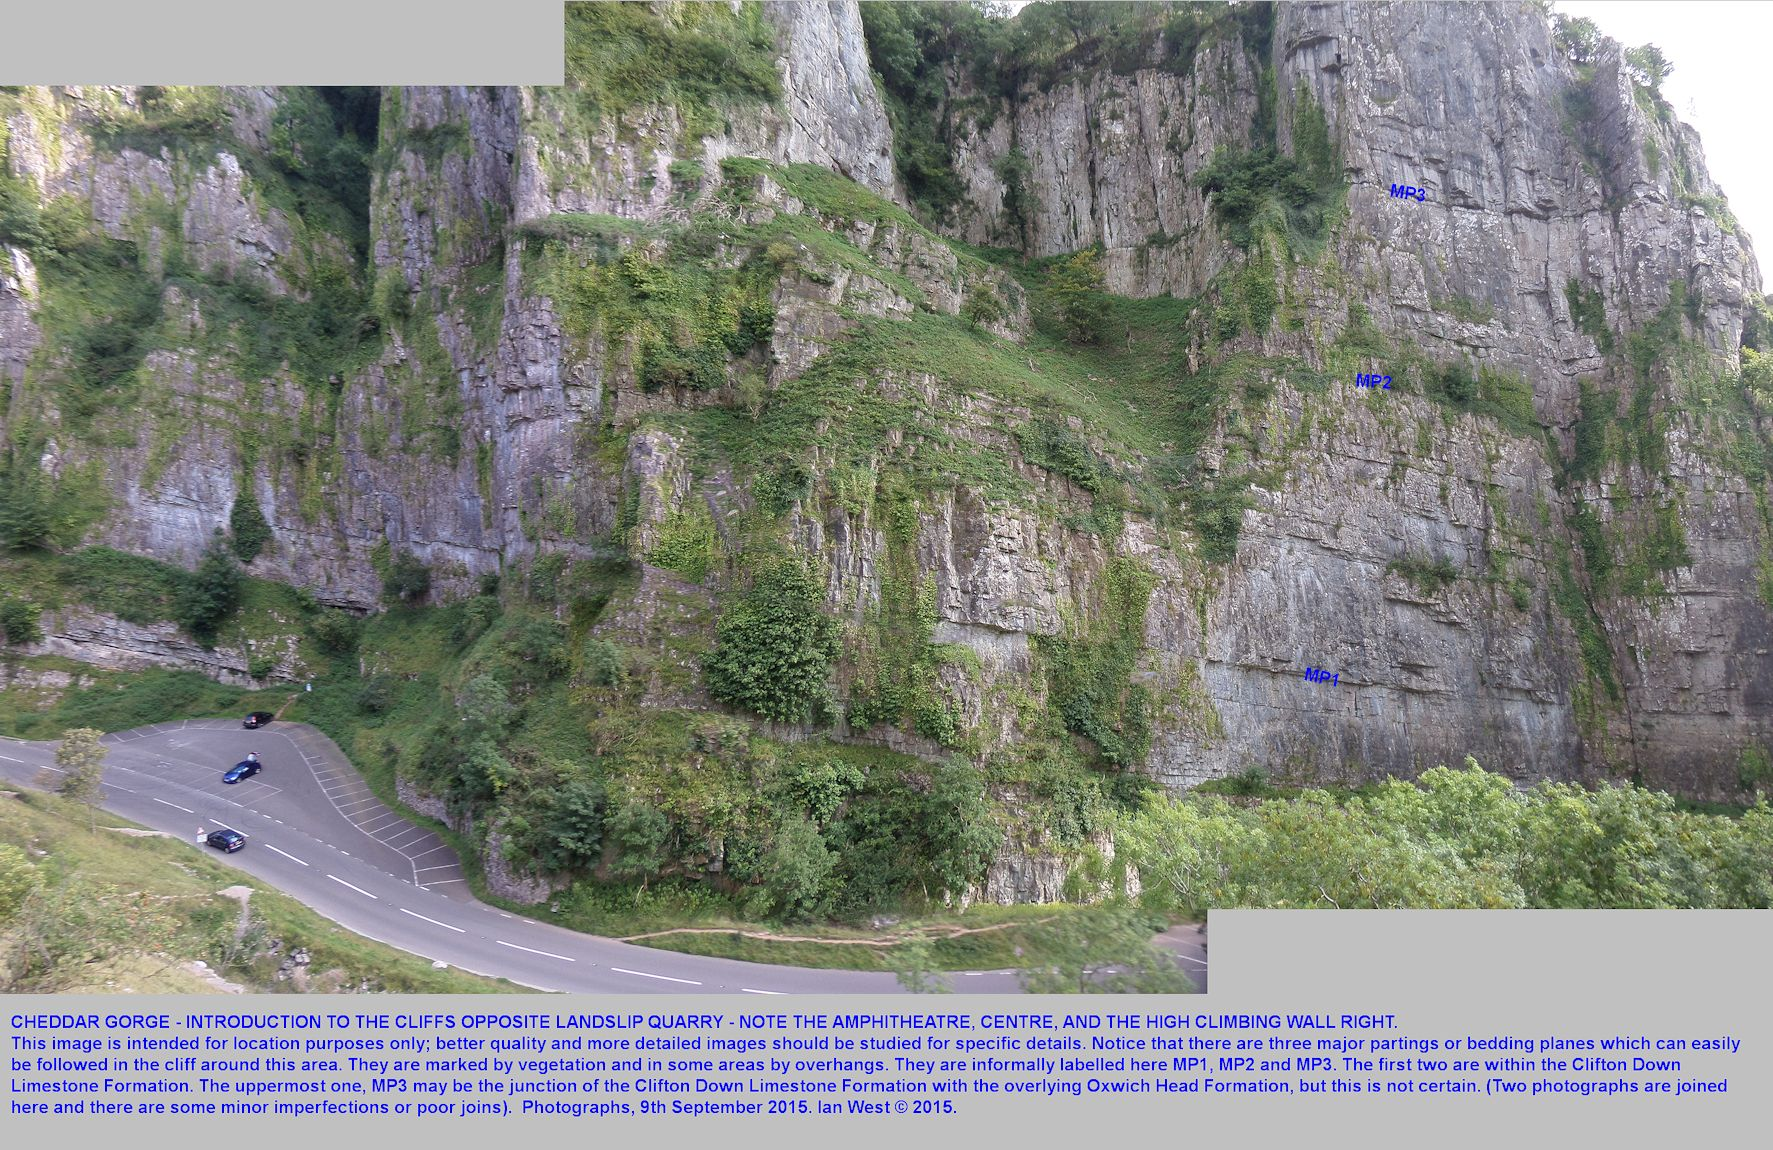 A general view of the cliffs seen to the south of Landslip Quarry, Cheddar Gorge, including the grassy Amphitheatre and the high, vertical cliff, on the right, frequently used for rock-climbing